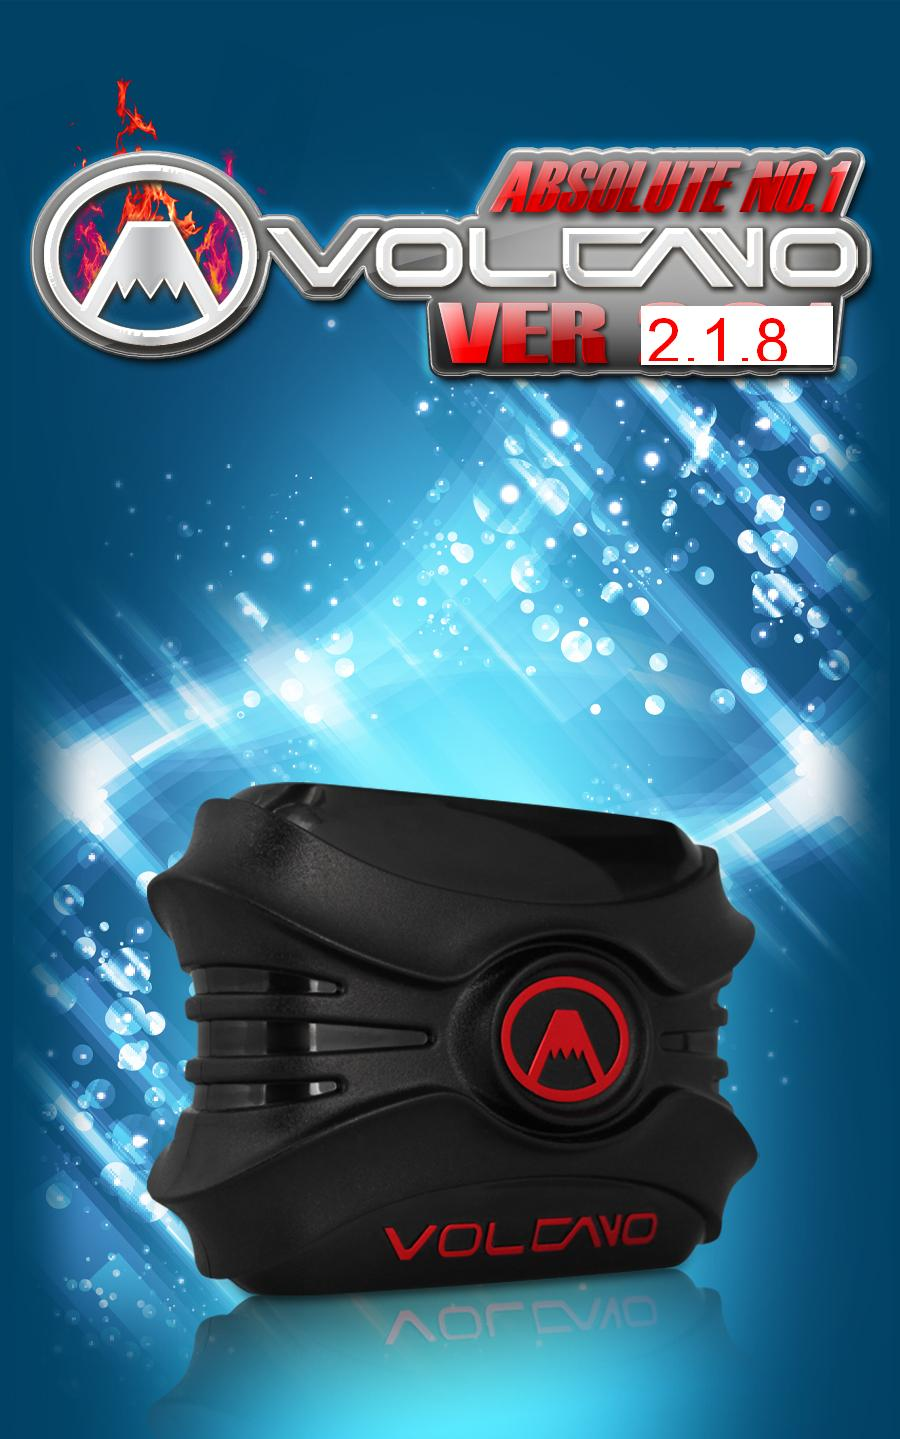 Volcano Box by Furious Team [Latest News and Updates]  Ggggg